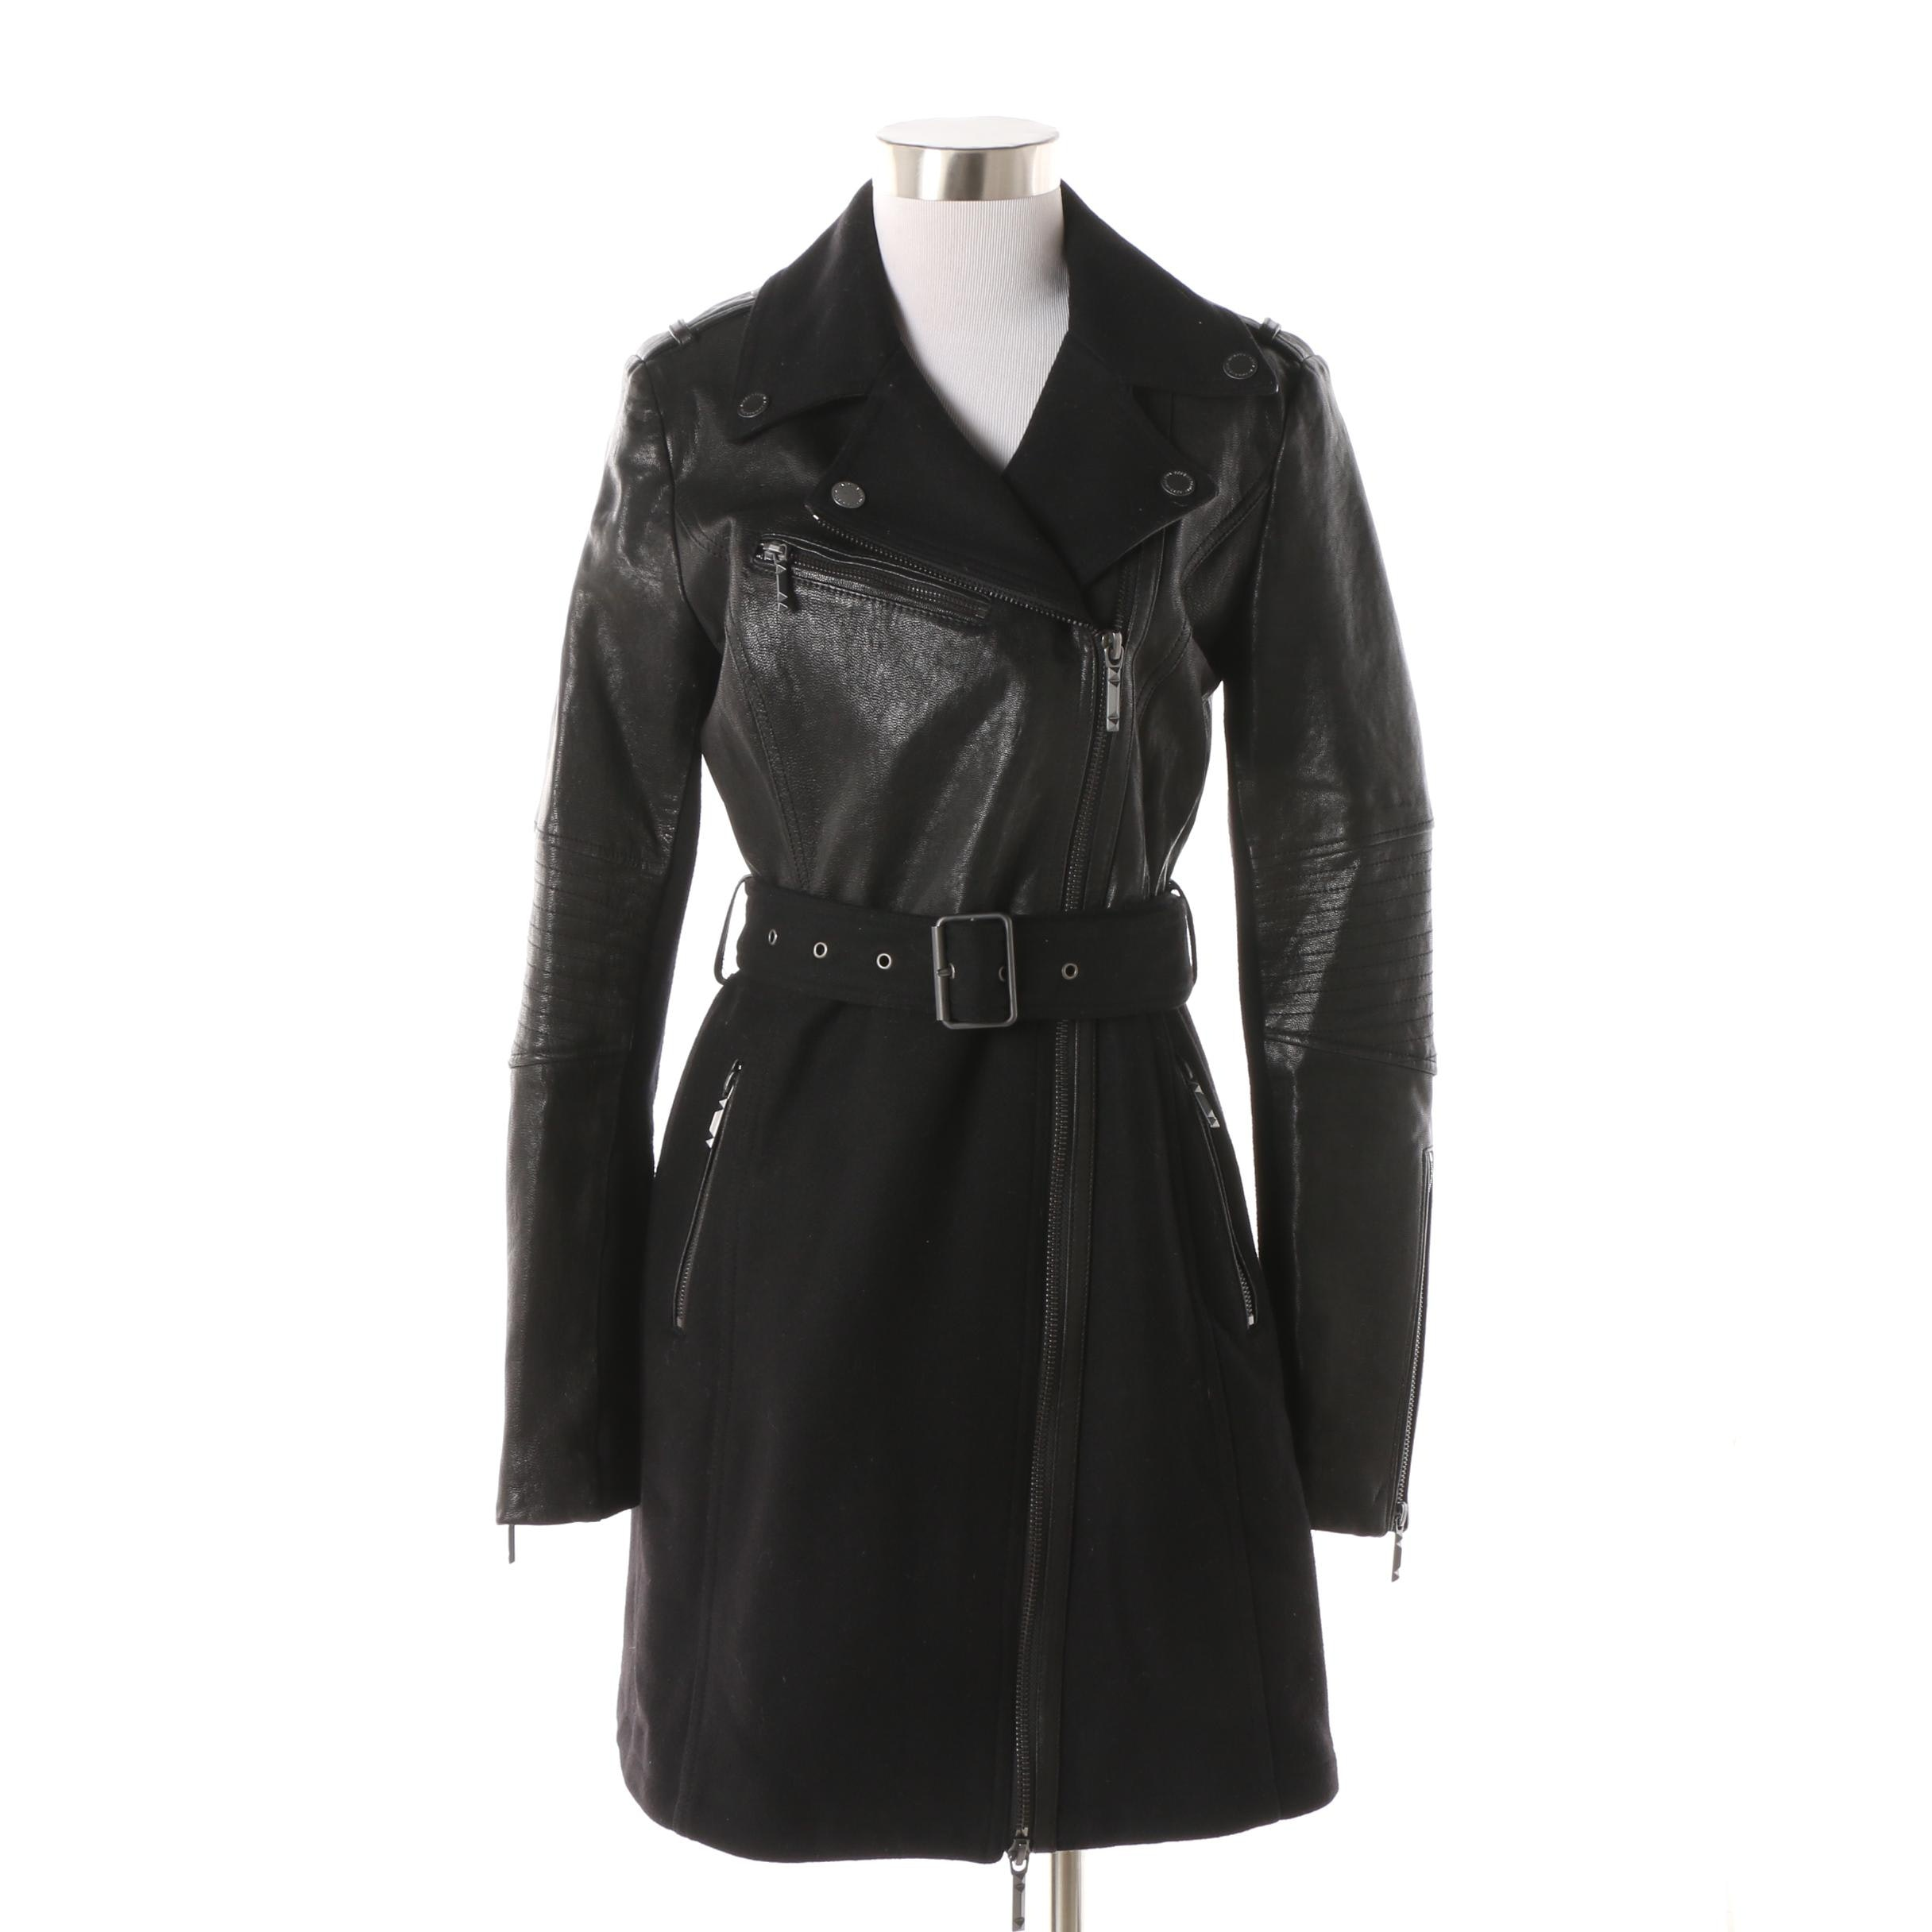 Women's BCBG Max Azria Black Leather and Wool Coat